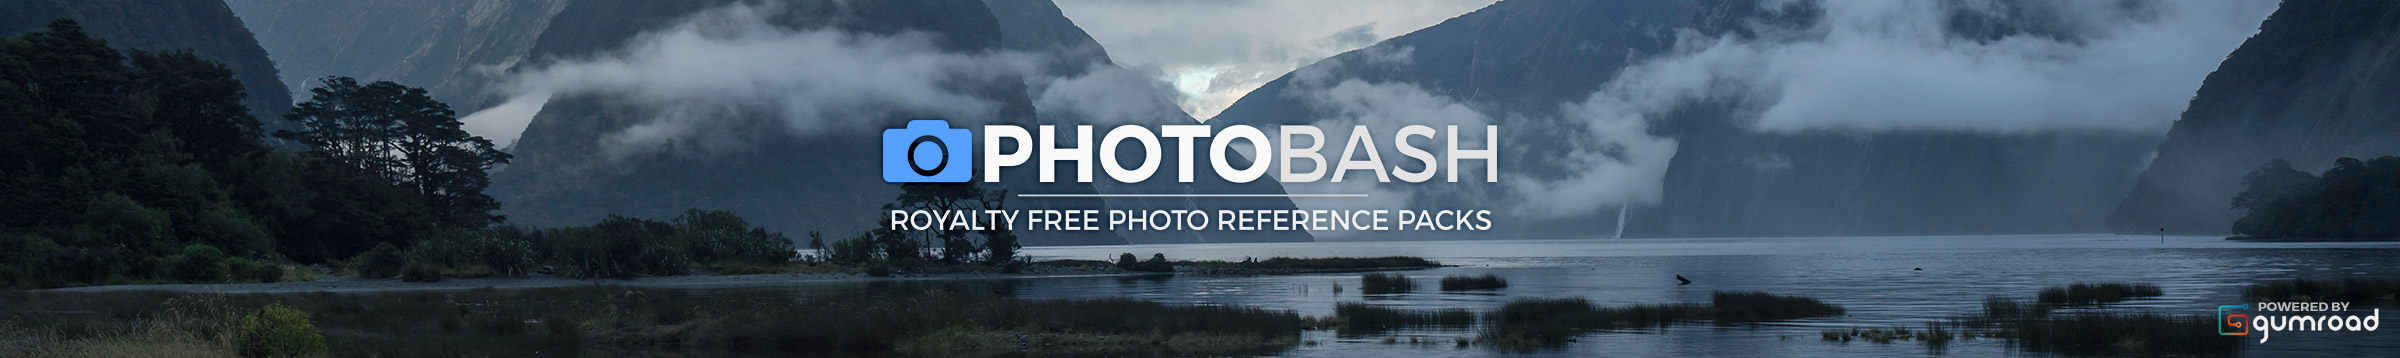 PHOTOBASH - Royalty Free Reference Photos For Artists